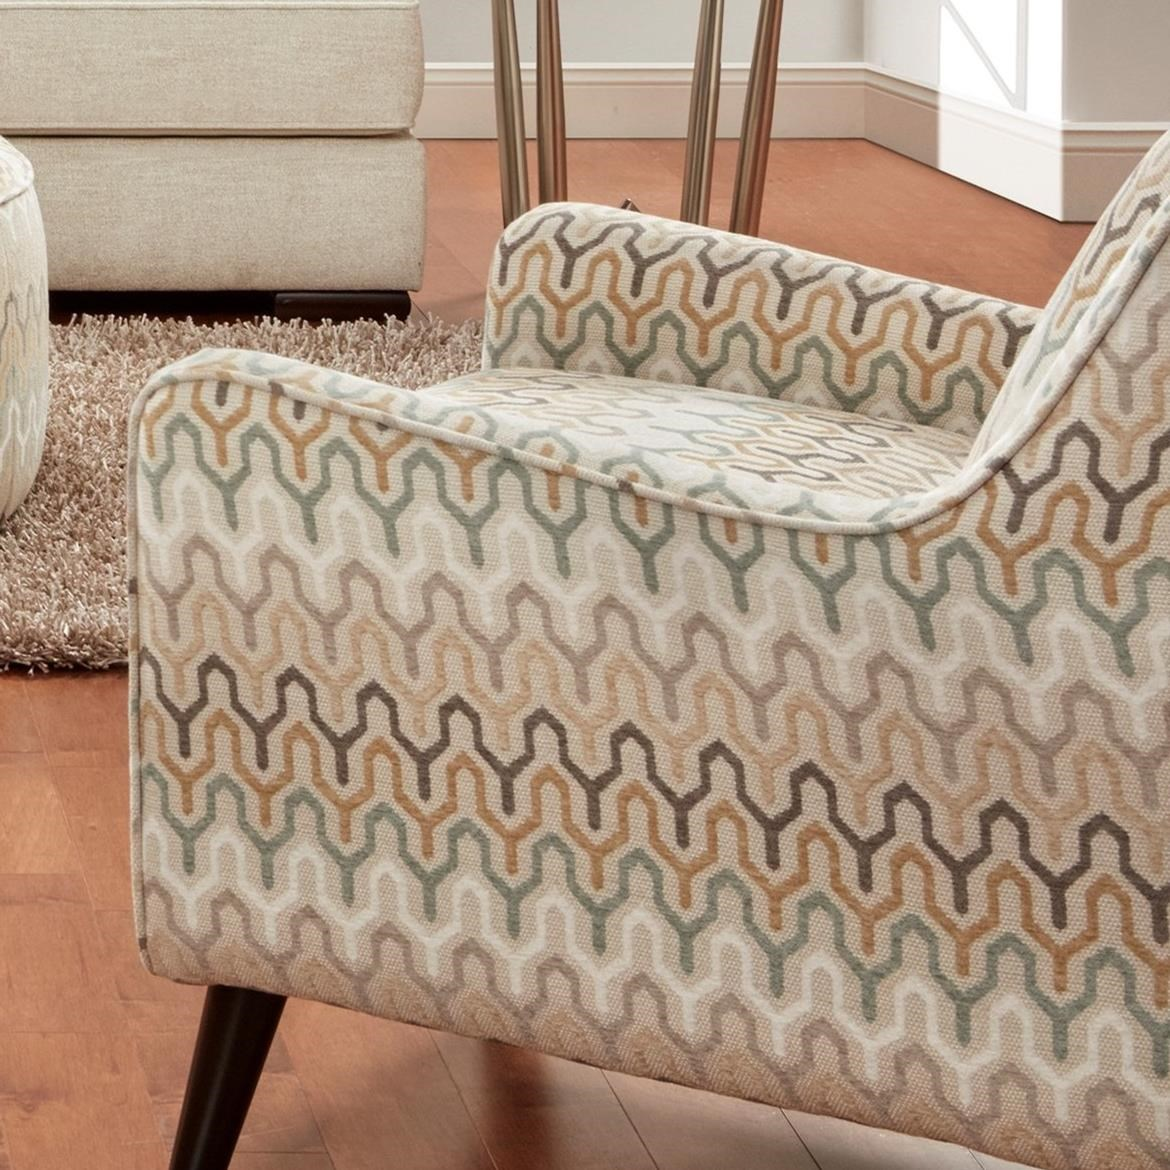 240 Chair by Fusion Furniture at Miller Waldrop Furniture and Decor